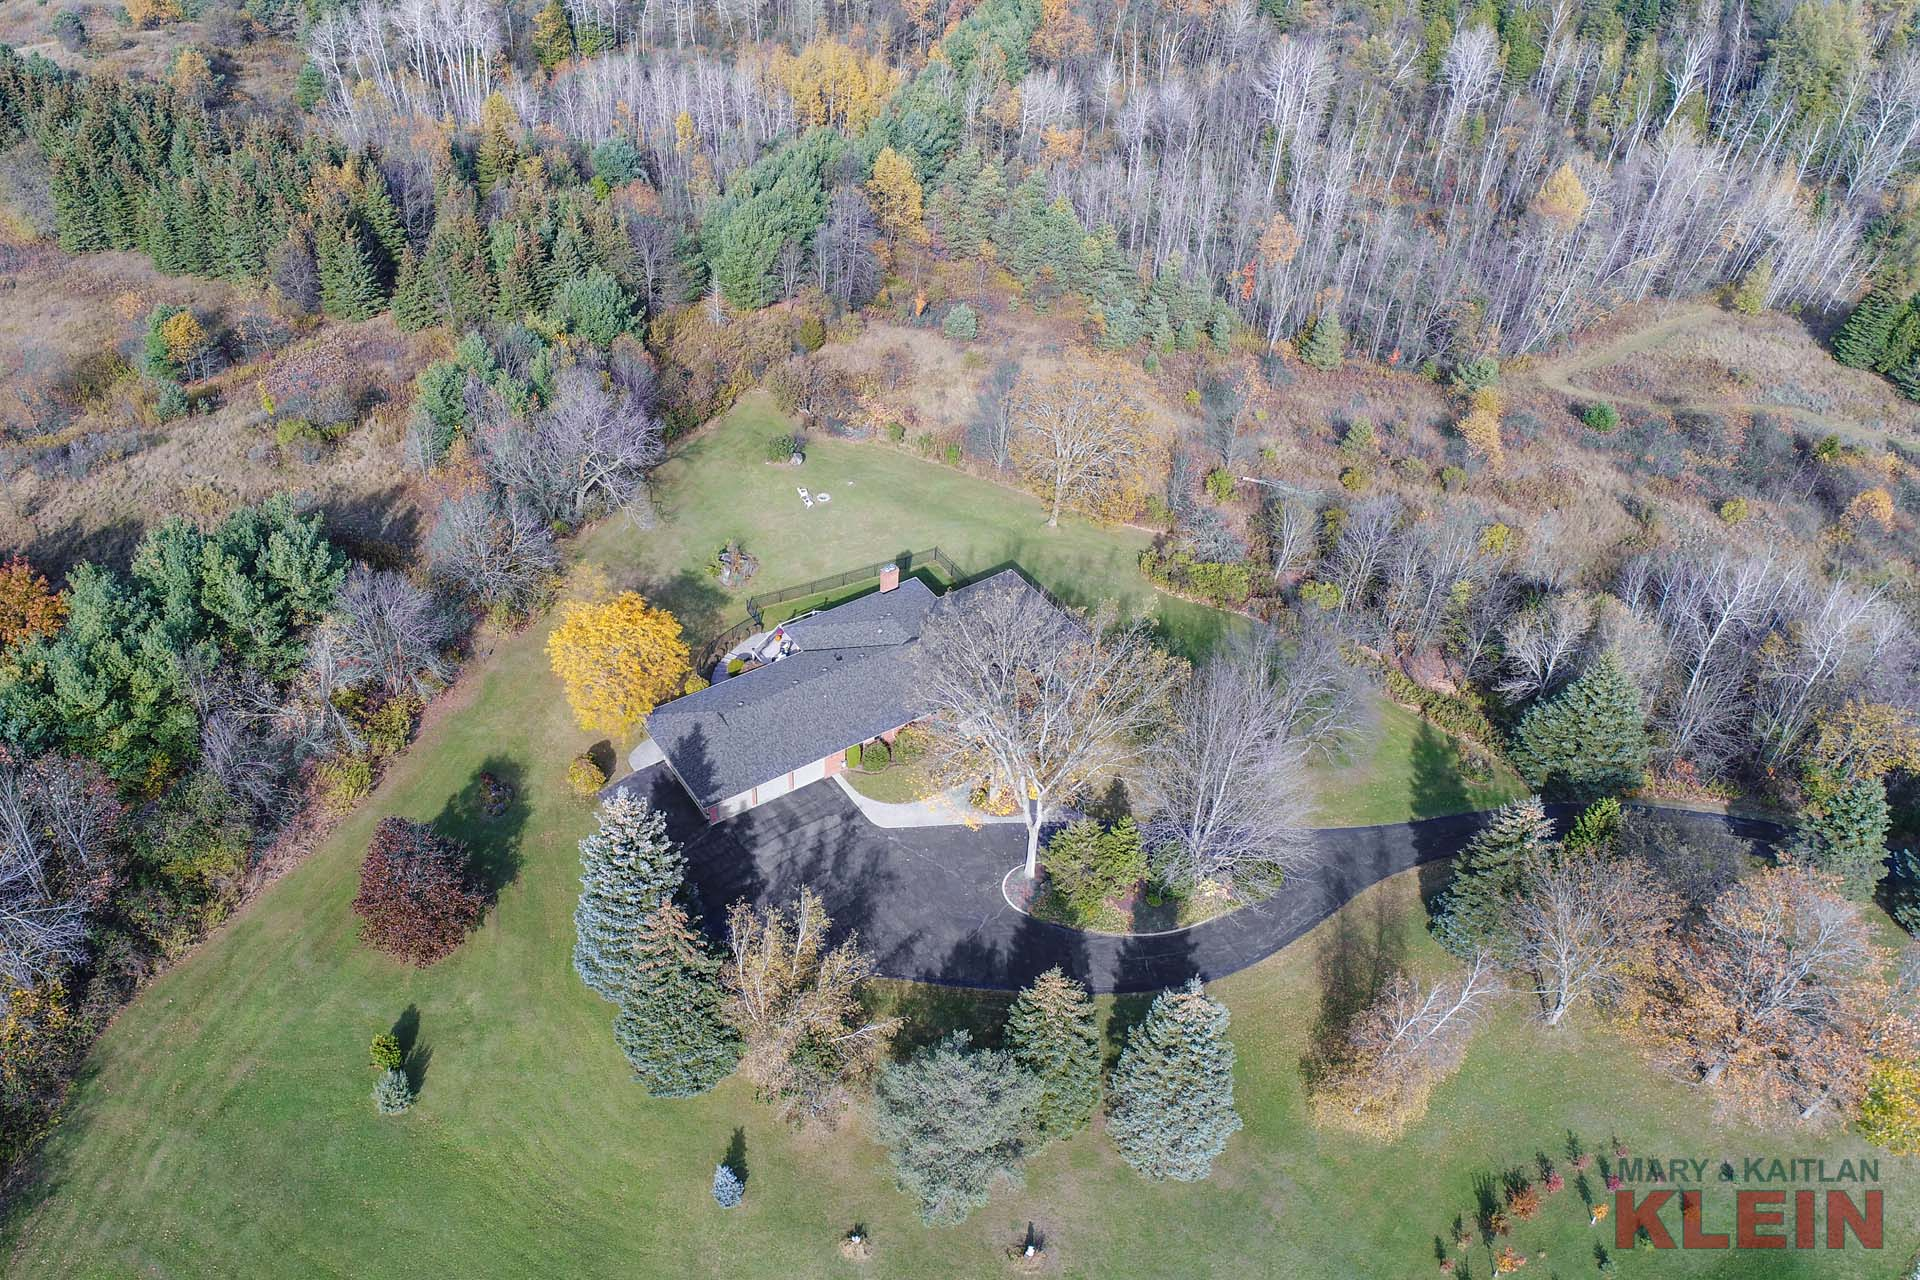 Caledon, 4 Bedroom Home, In-law suite, granny suite, apartment, walkout basement, home for sale